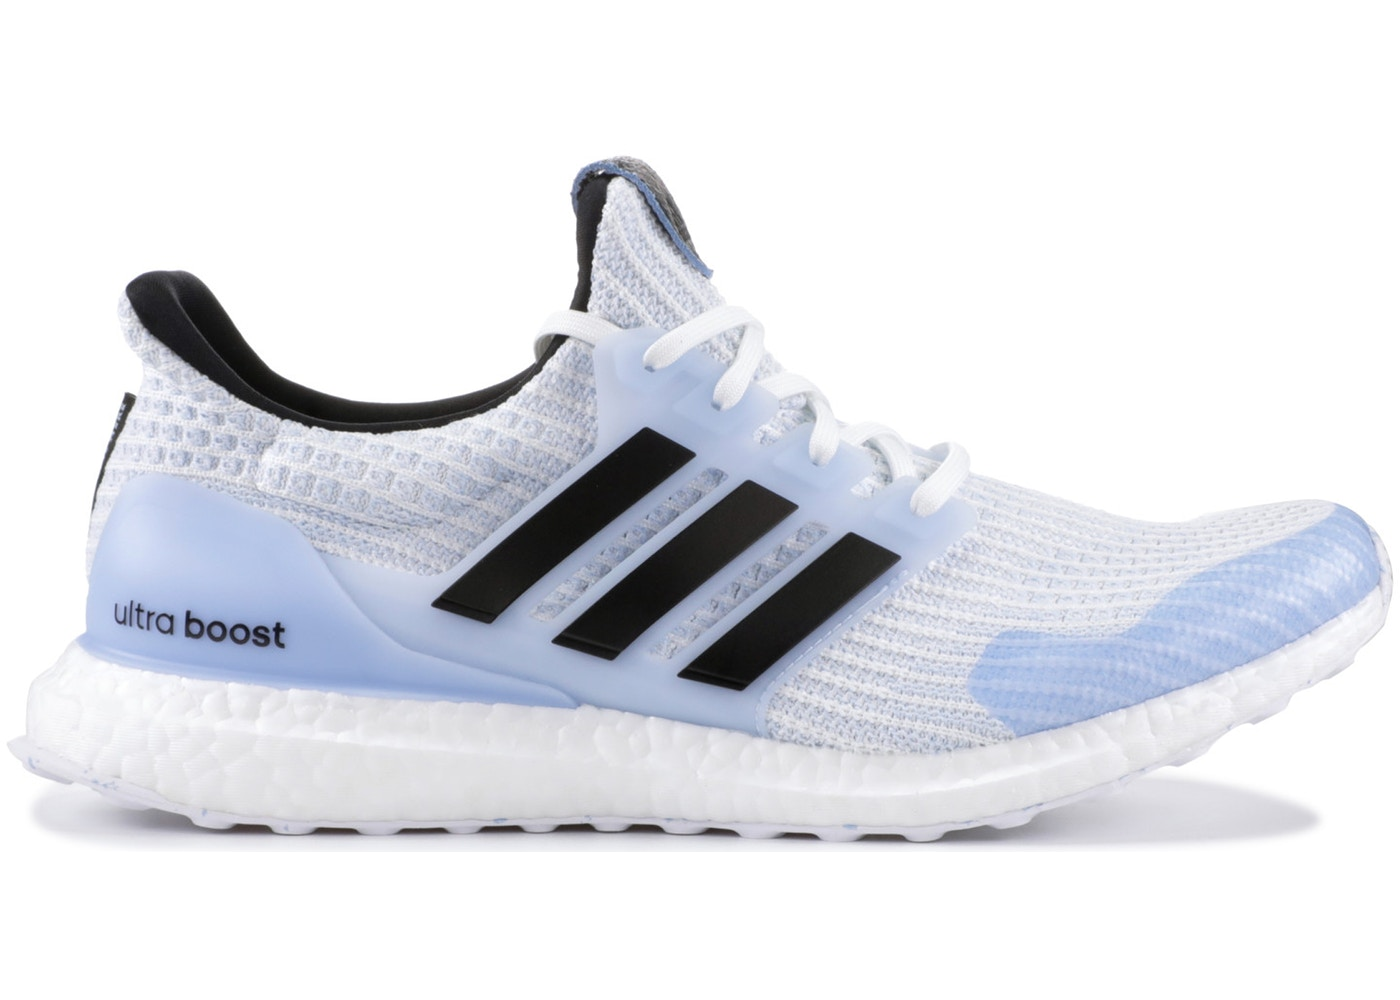 450303a72e9e8c adidas Ultra Boost 4.0 Game of Thrones White Walkers - EE3708